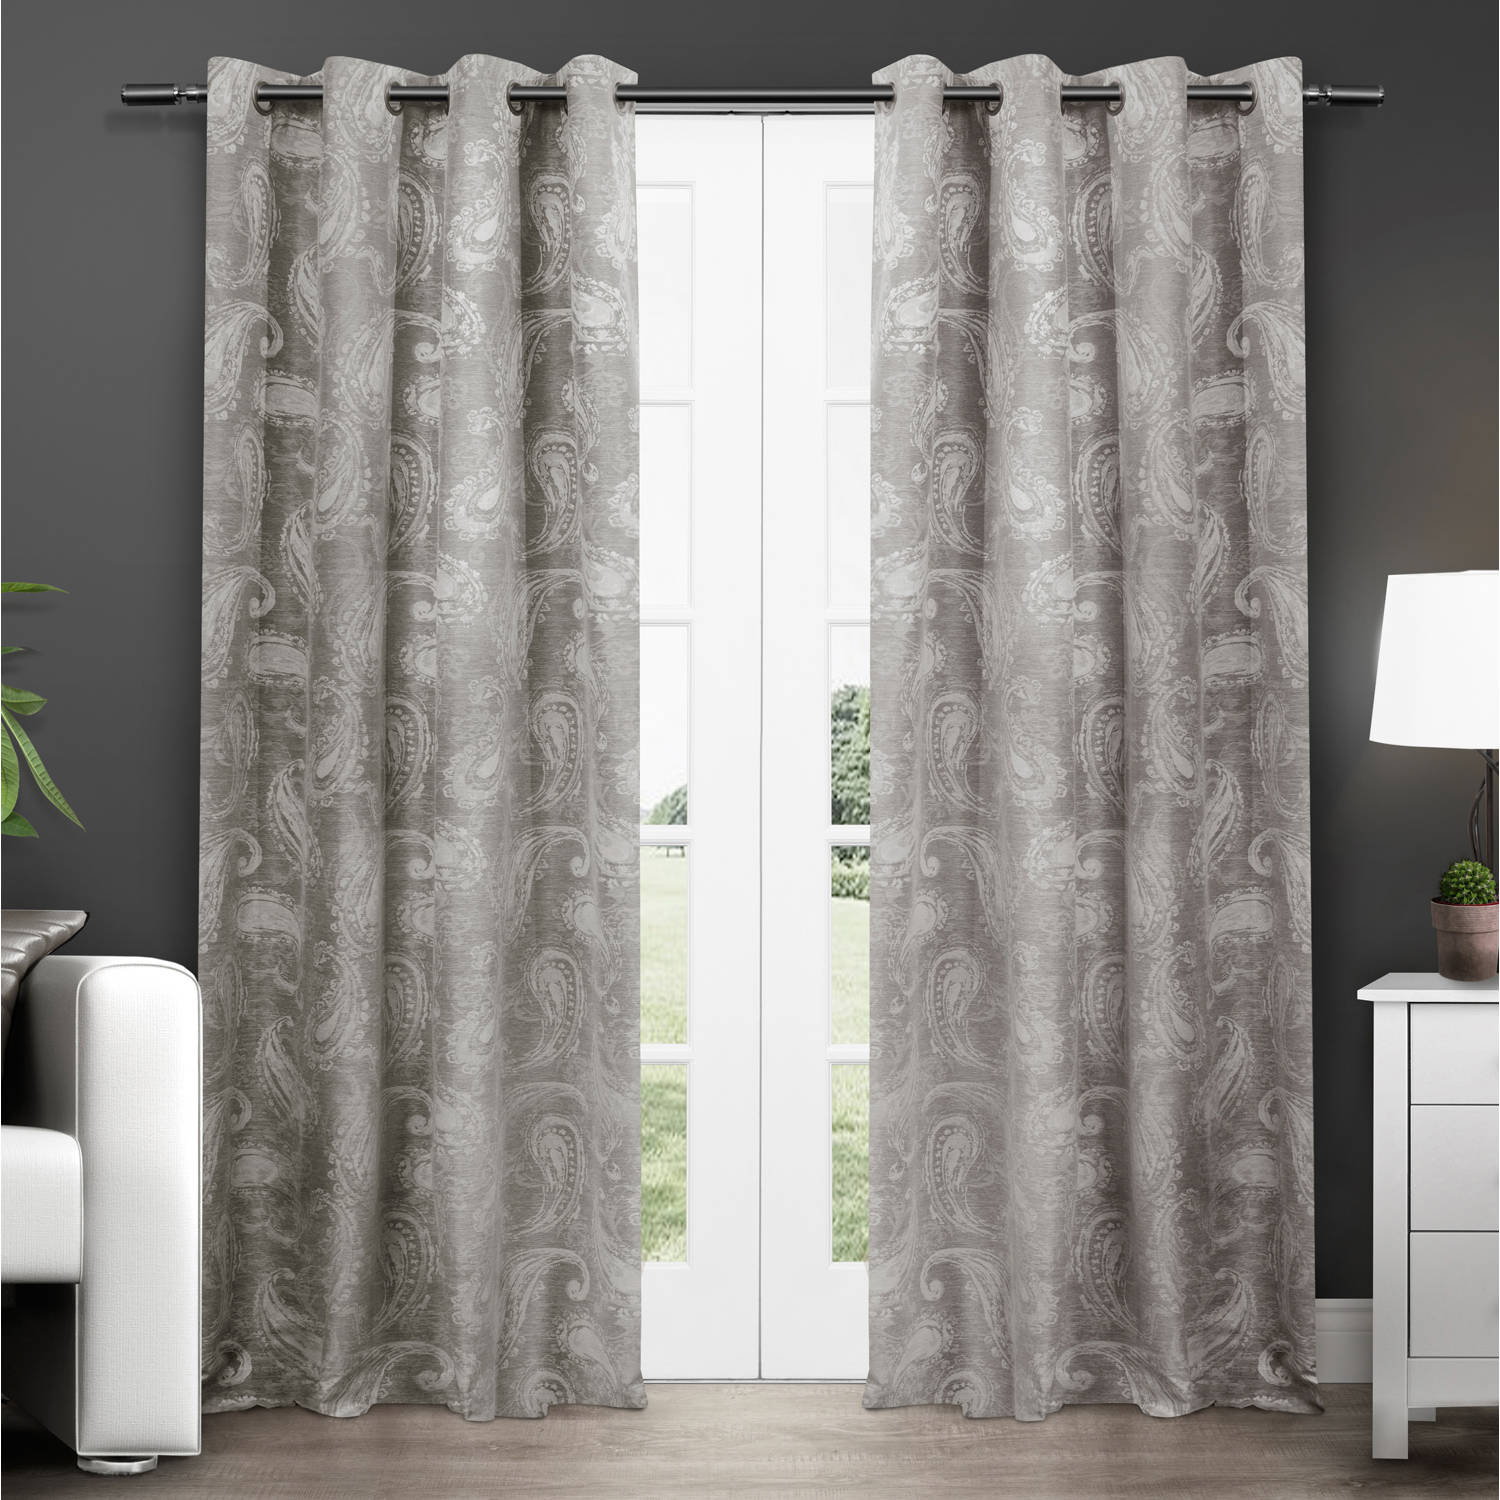 "Exclusive Home Bangalore Paisley Thermal Grommet Top Window Curtain Panels, 54"" x 84"", Ash Grey, Set of 2"